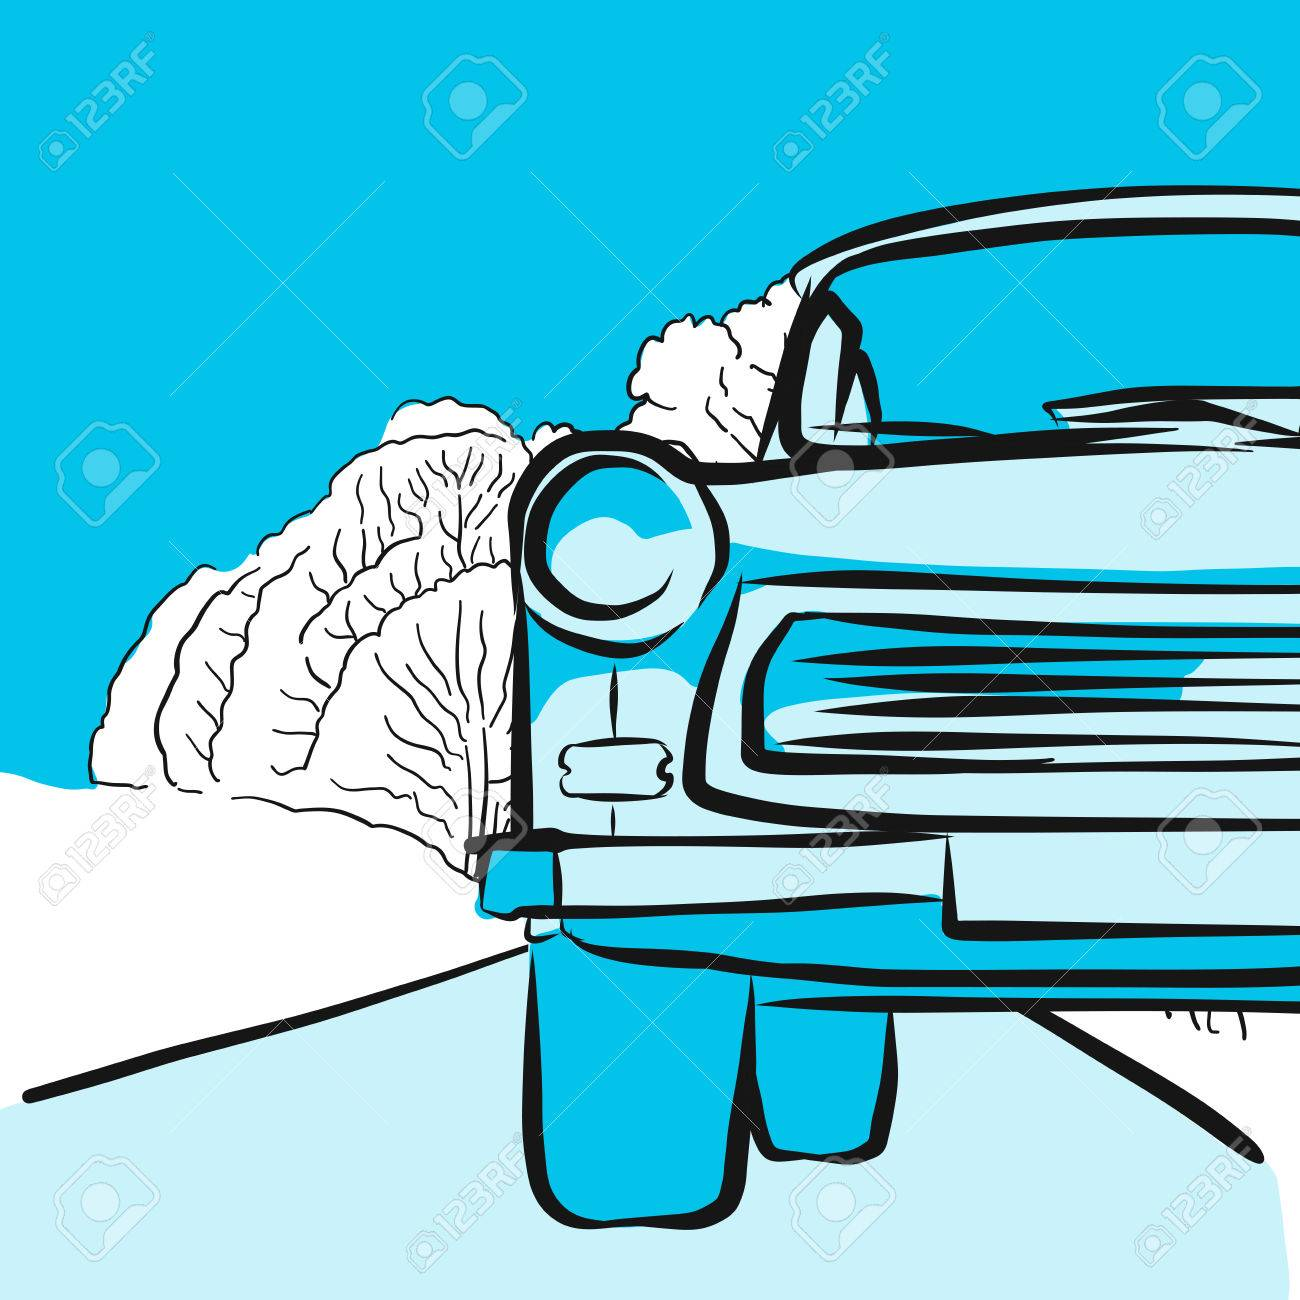 Trabant Clipart Trabant In Winter On Icy Road Hand Drawn Vector Artwork